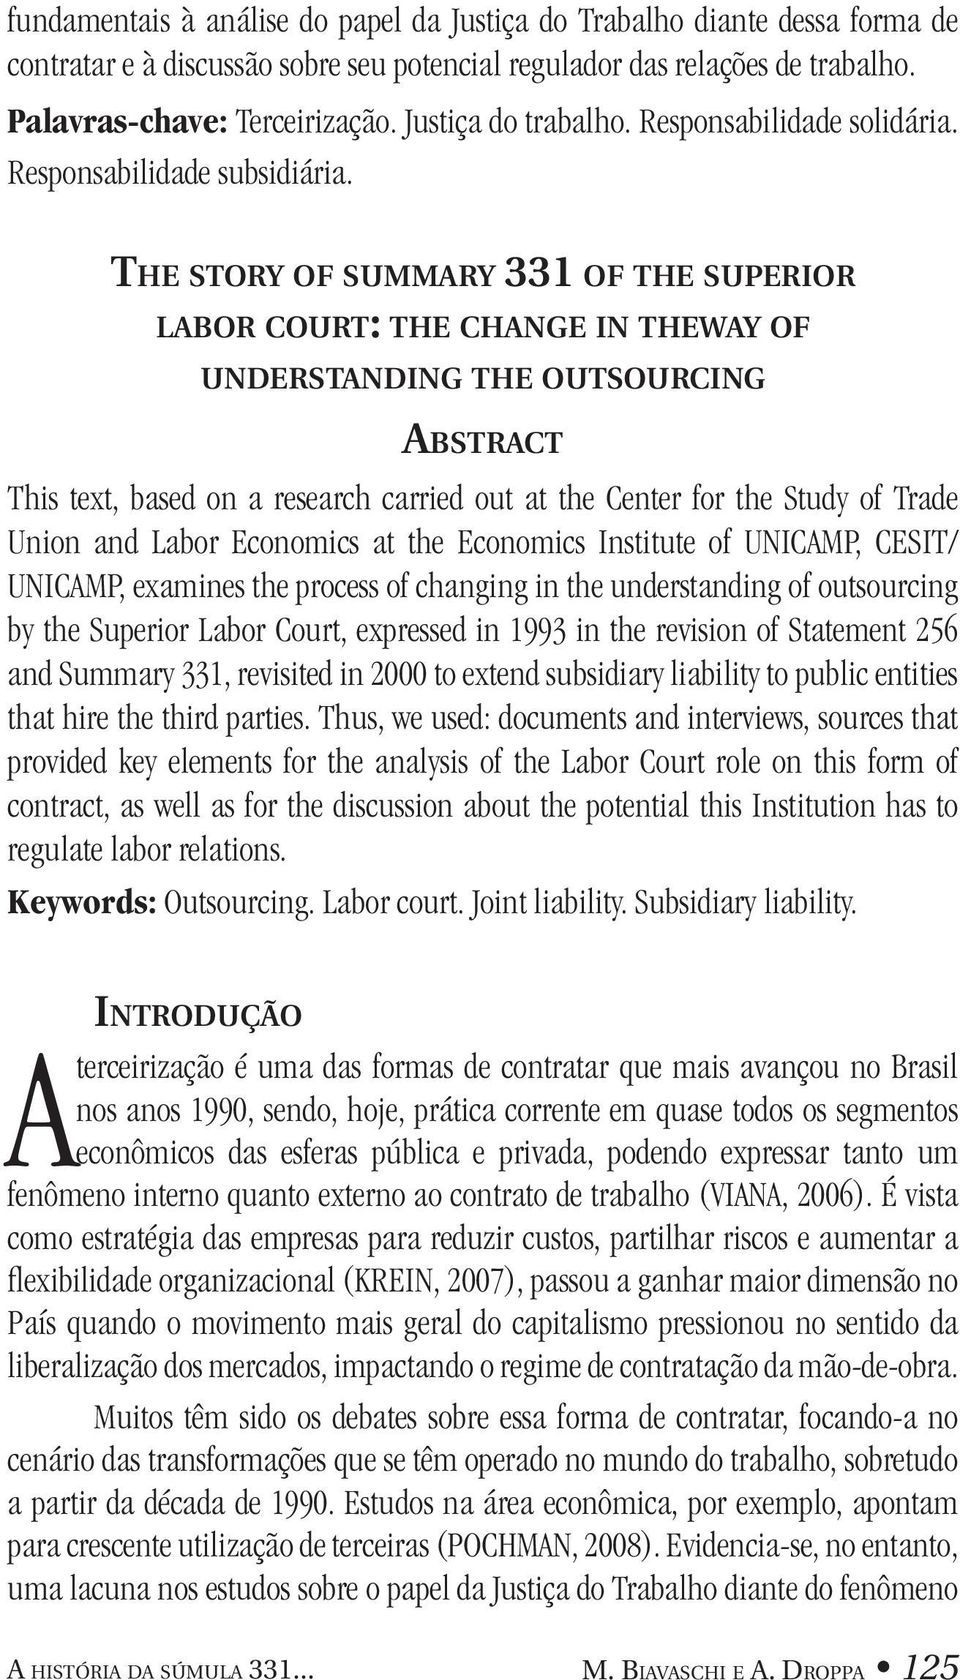 The story of summary 331 of the superior labor court: the change in theway of understanding the outsourcing Abstract This text, based on a research carried out at the Center for the Study of Trade